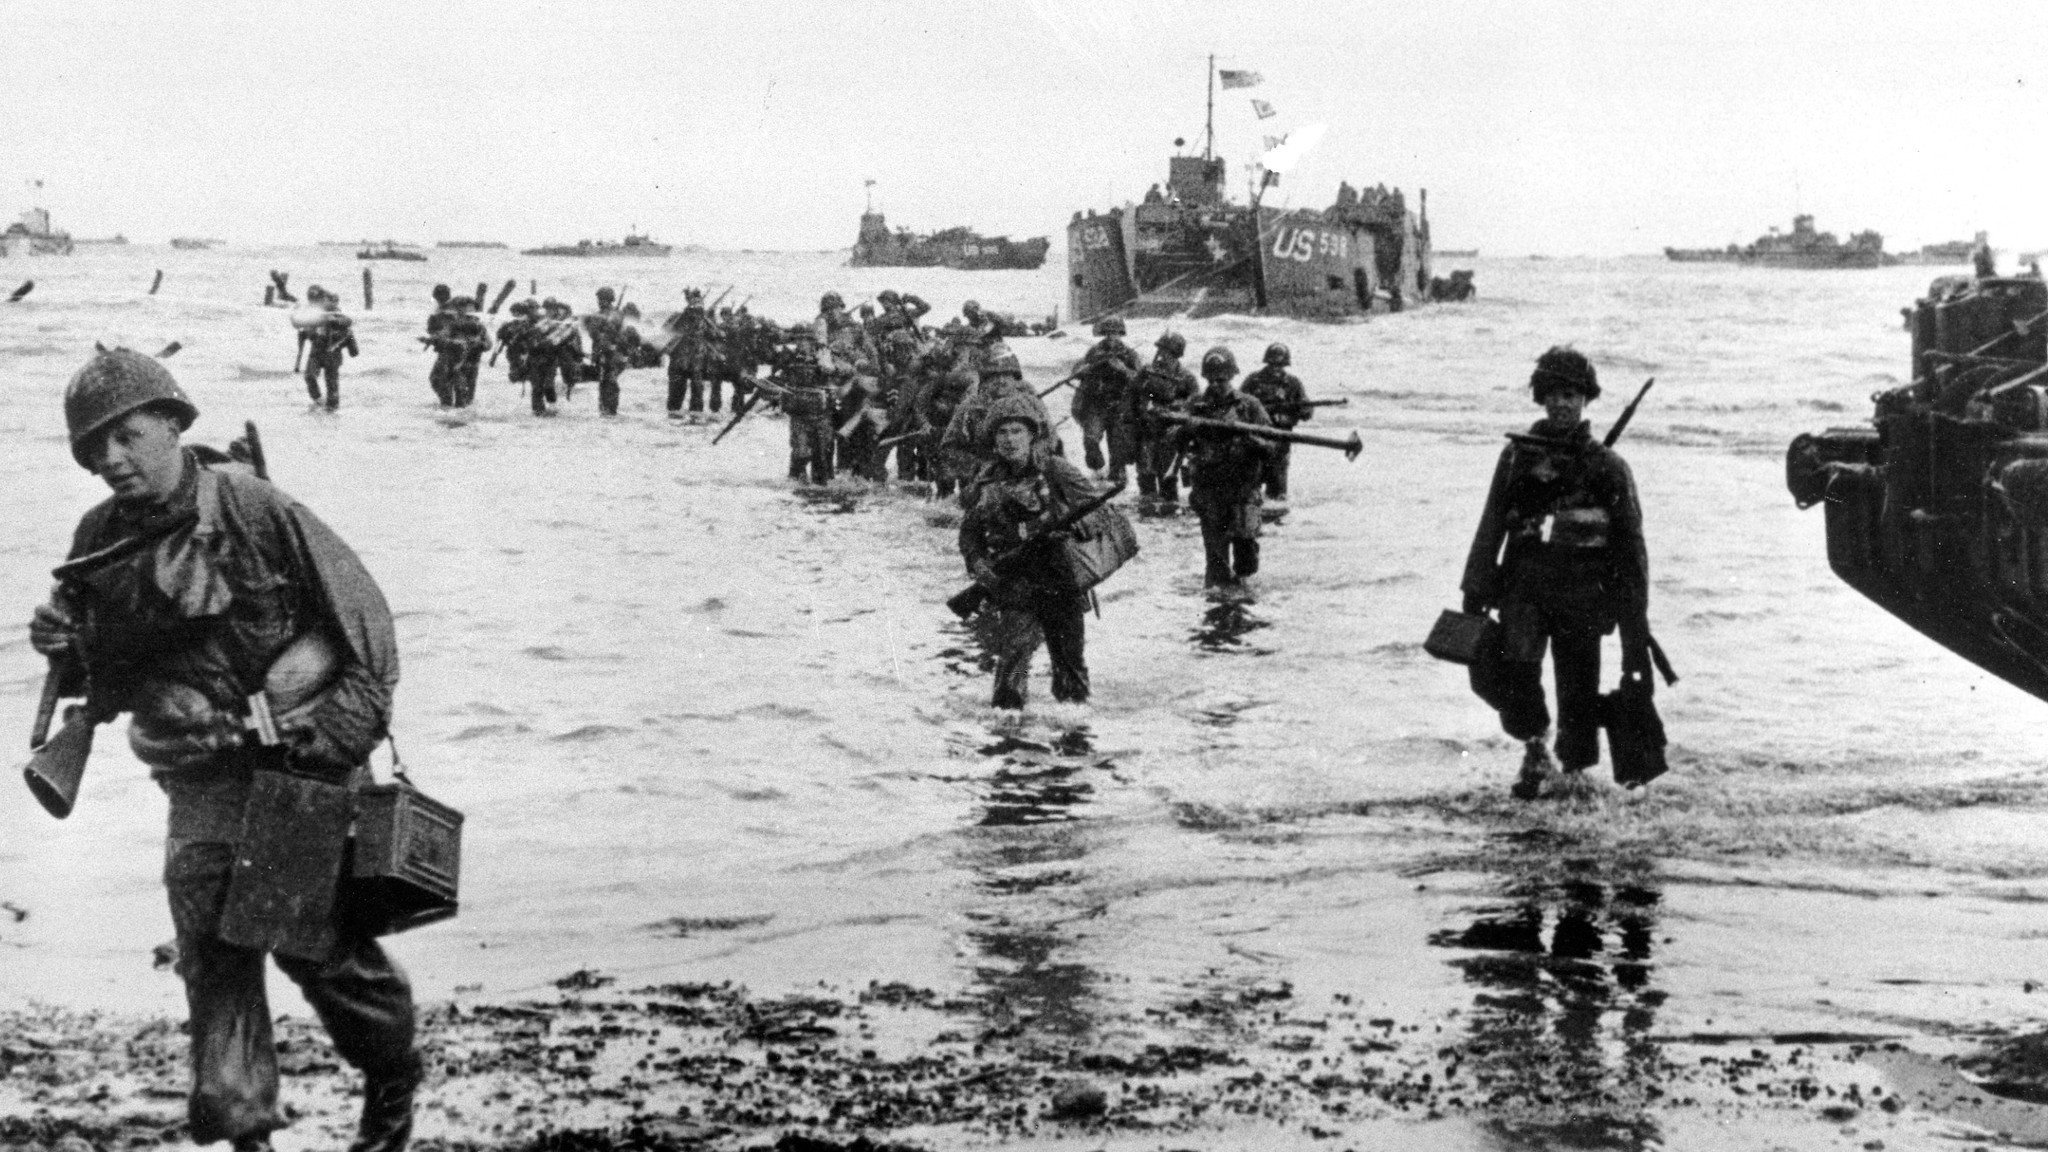 world war ii and d day invasion On the 70th anniversary of d-day,  'the screaming eagles', as they prepare for the d-day invasion, england, world war ii, june 6, 1944.